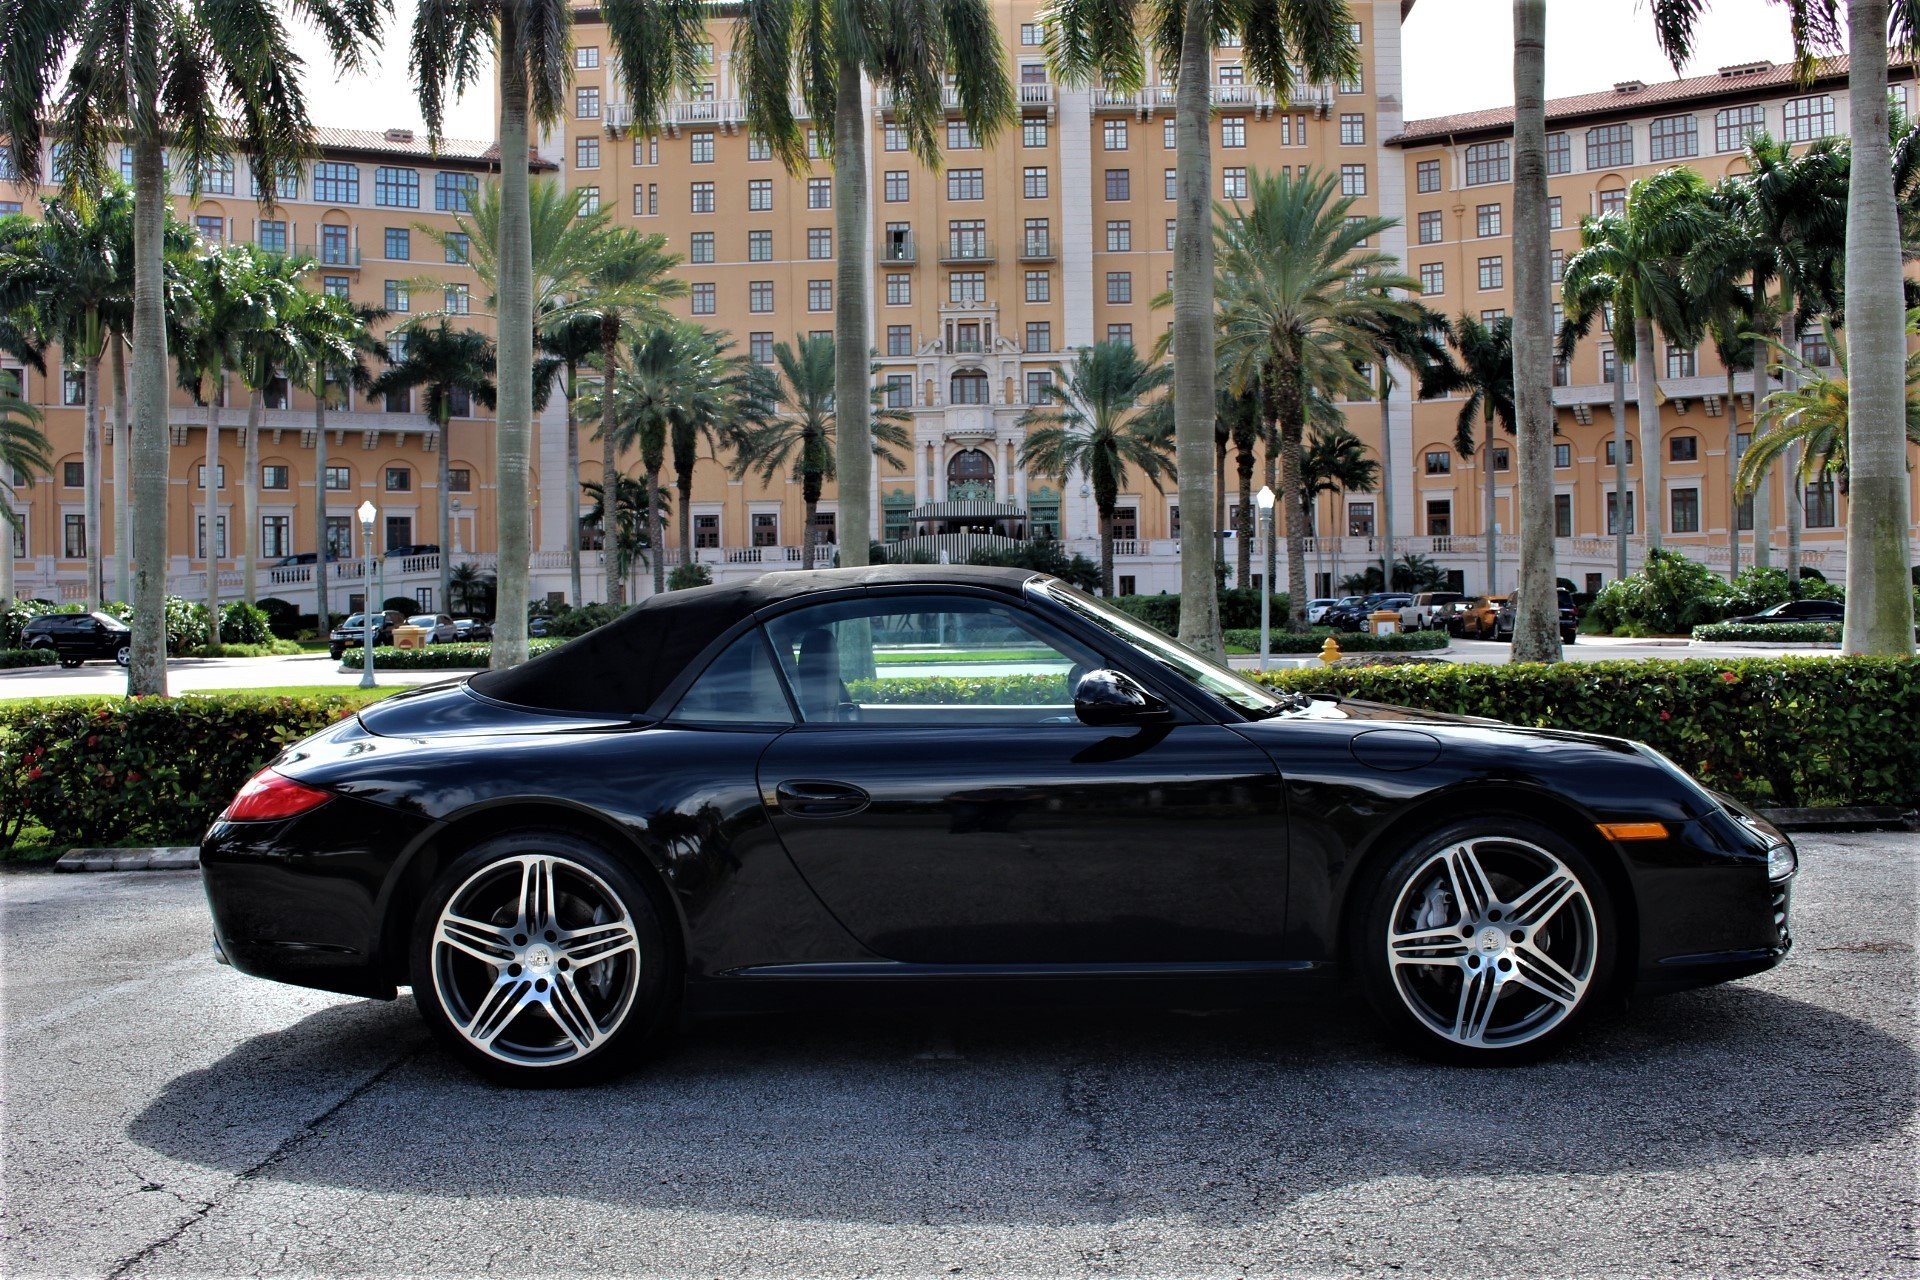 Used 2009 Porsche 911 Carrera for sale Sold at The Gables Sports Cars in Miami FL 33146 3